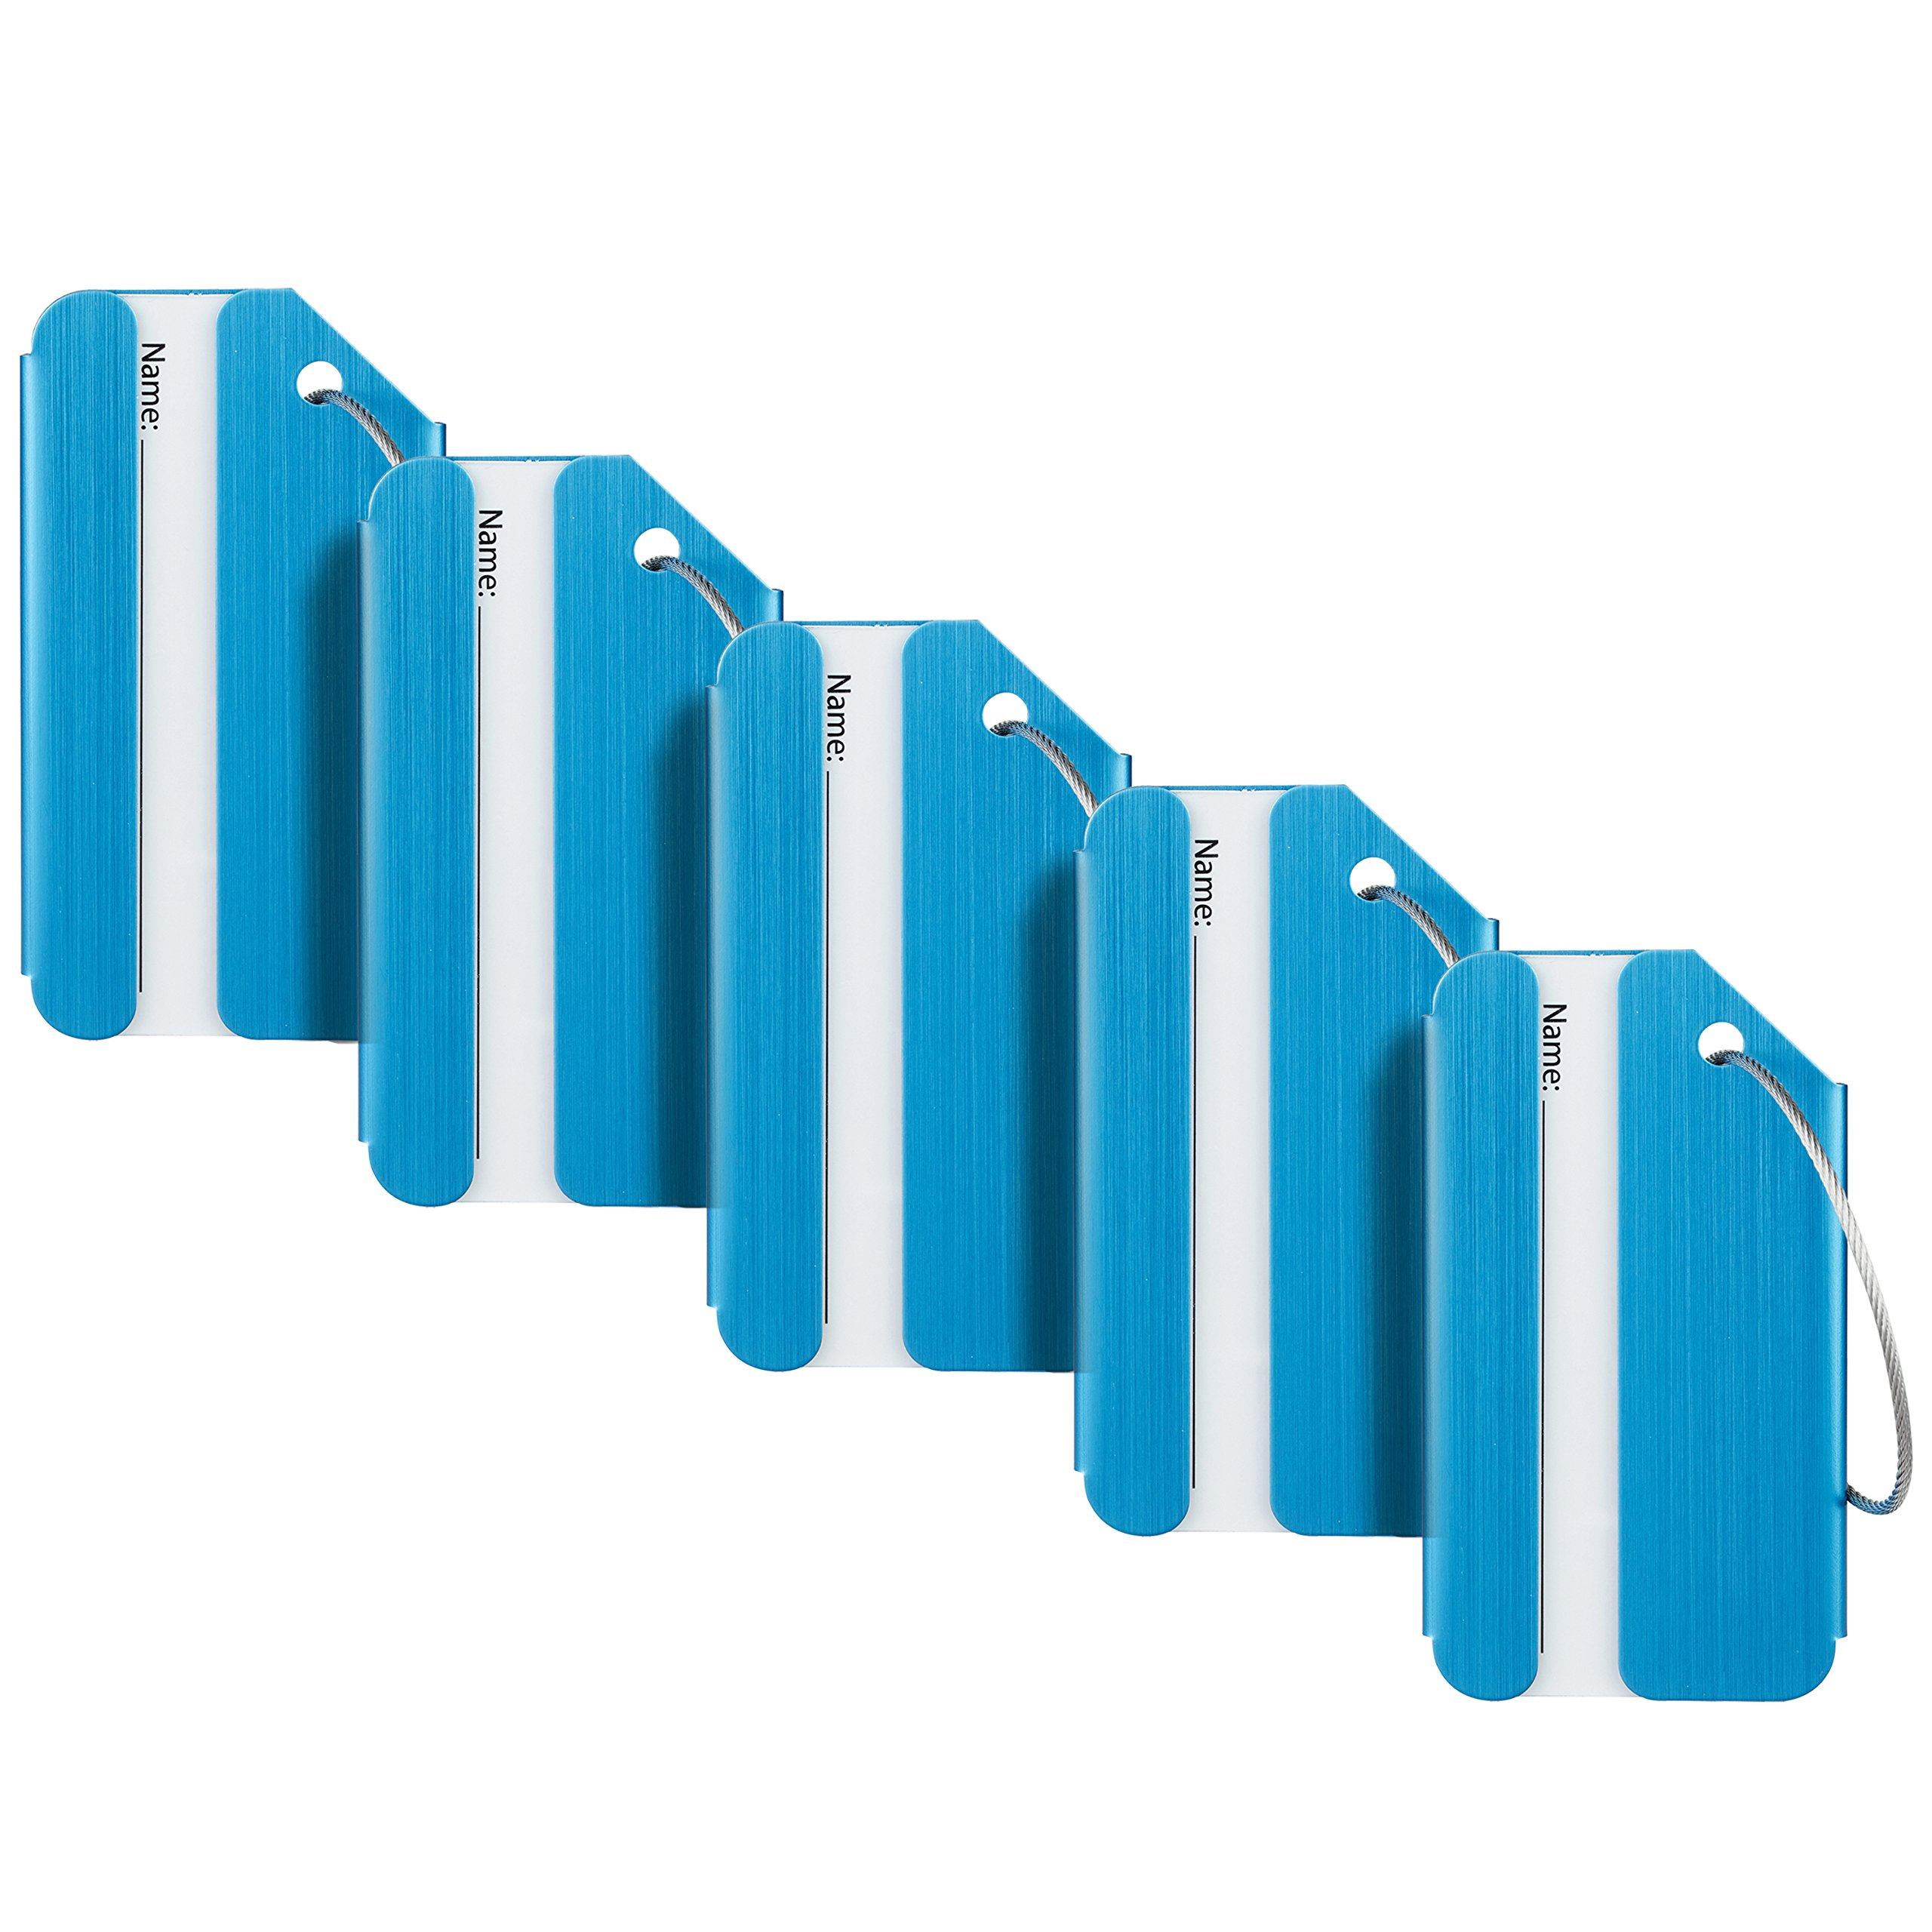 Travelambo Luggage Tags & Bag Tags Stainless Steel Aluminum Various Colors (blue 5 pcs set)